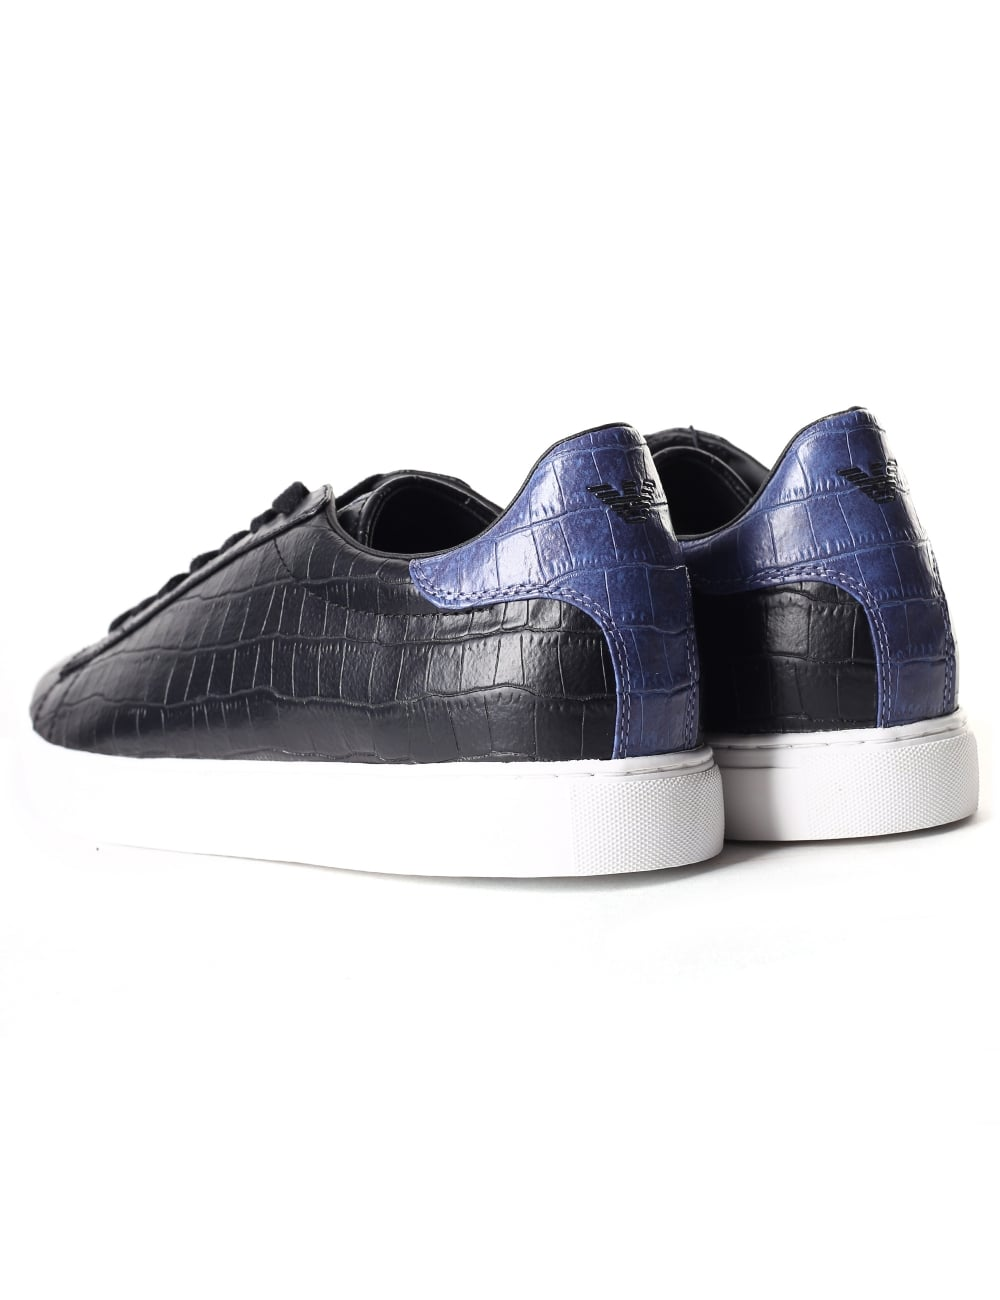 6441580240b Armani Jeans Men s Croc Embossed Lace Up Trainer